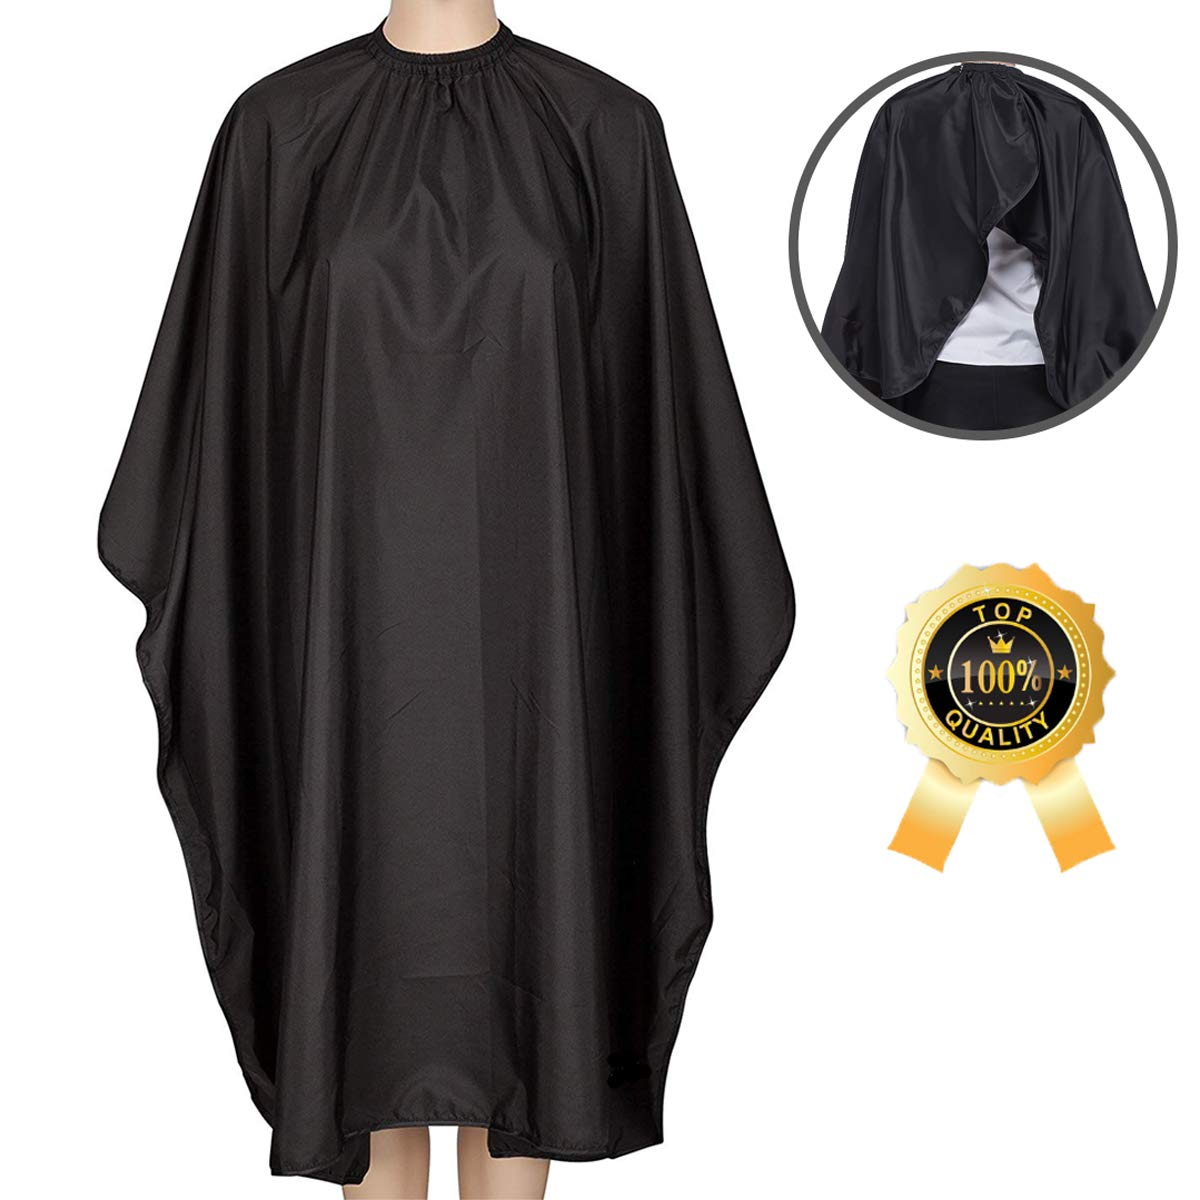 Barber Cape, Ymnenvxo Professional Hair Salon Cape with Adjustable Metal Clip, Waterproof Hair Cutting Cape for Barbers and Stylists - 55 x 63 inches Black by Ymnenvxo